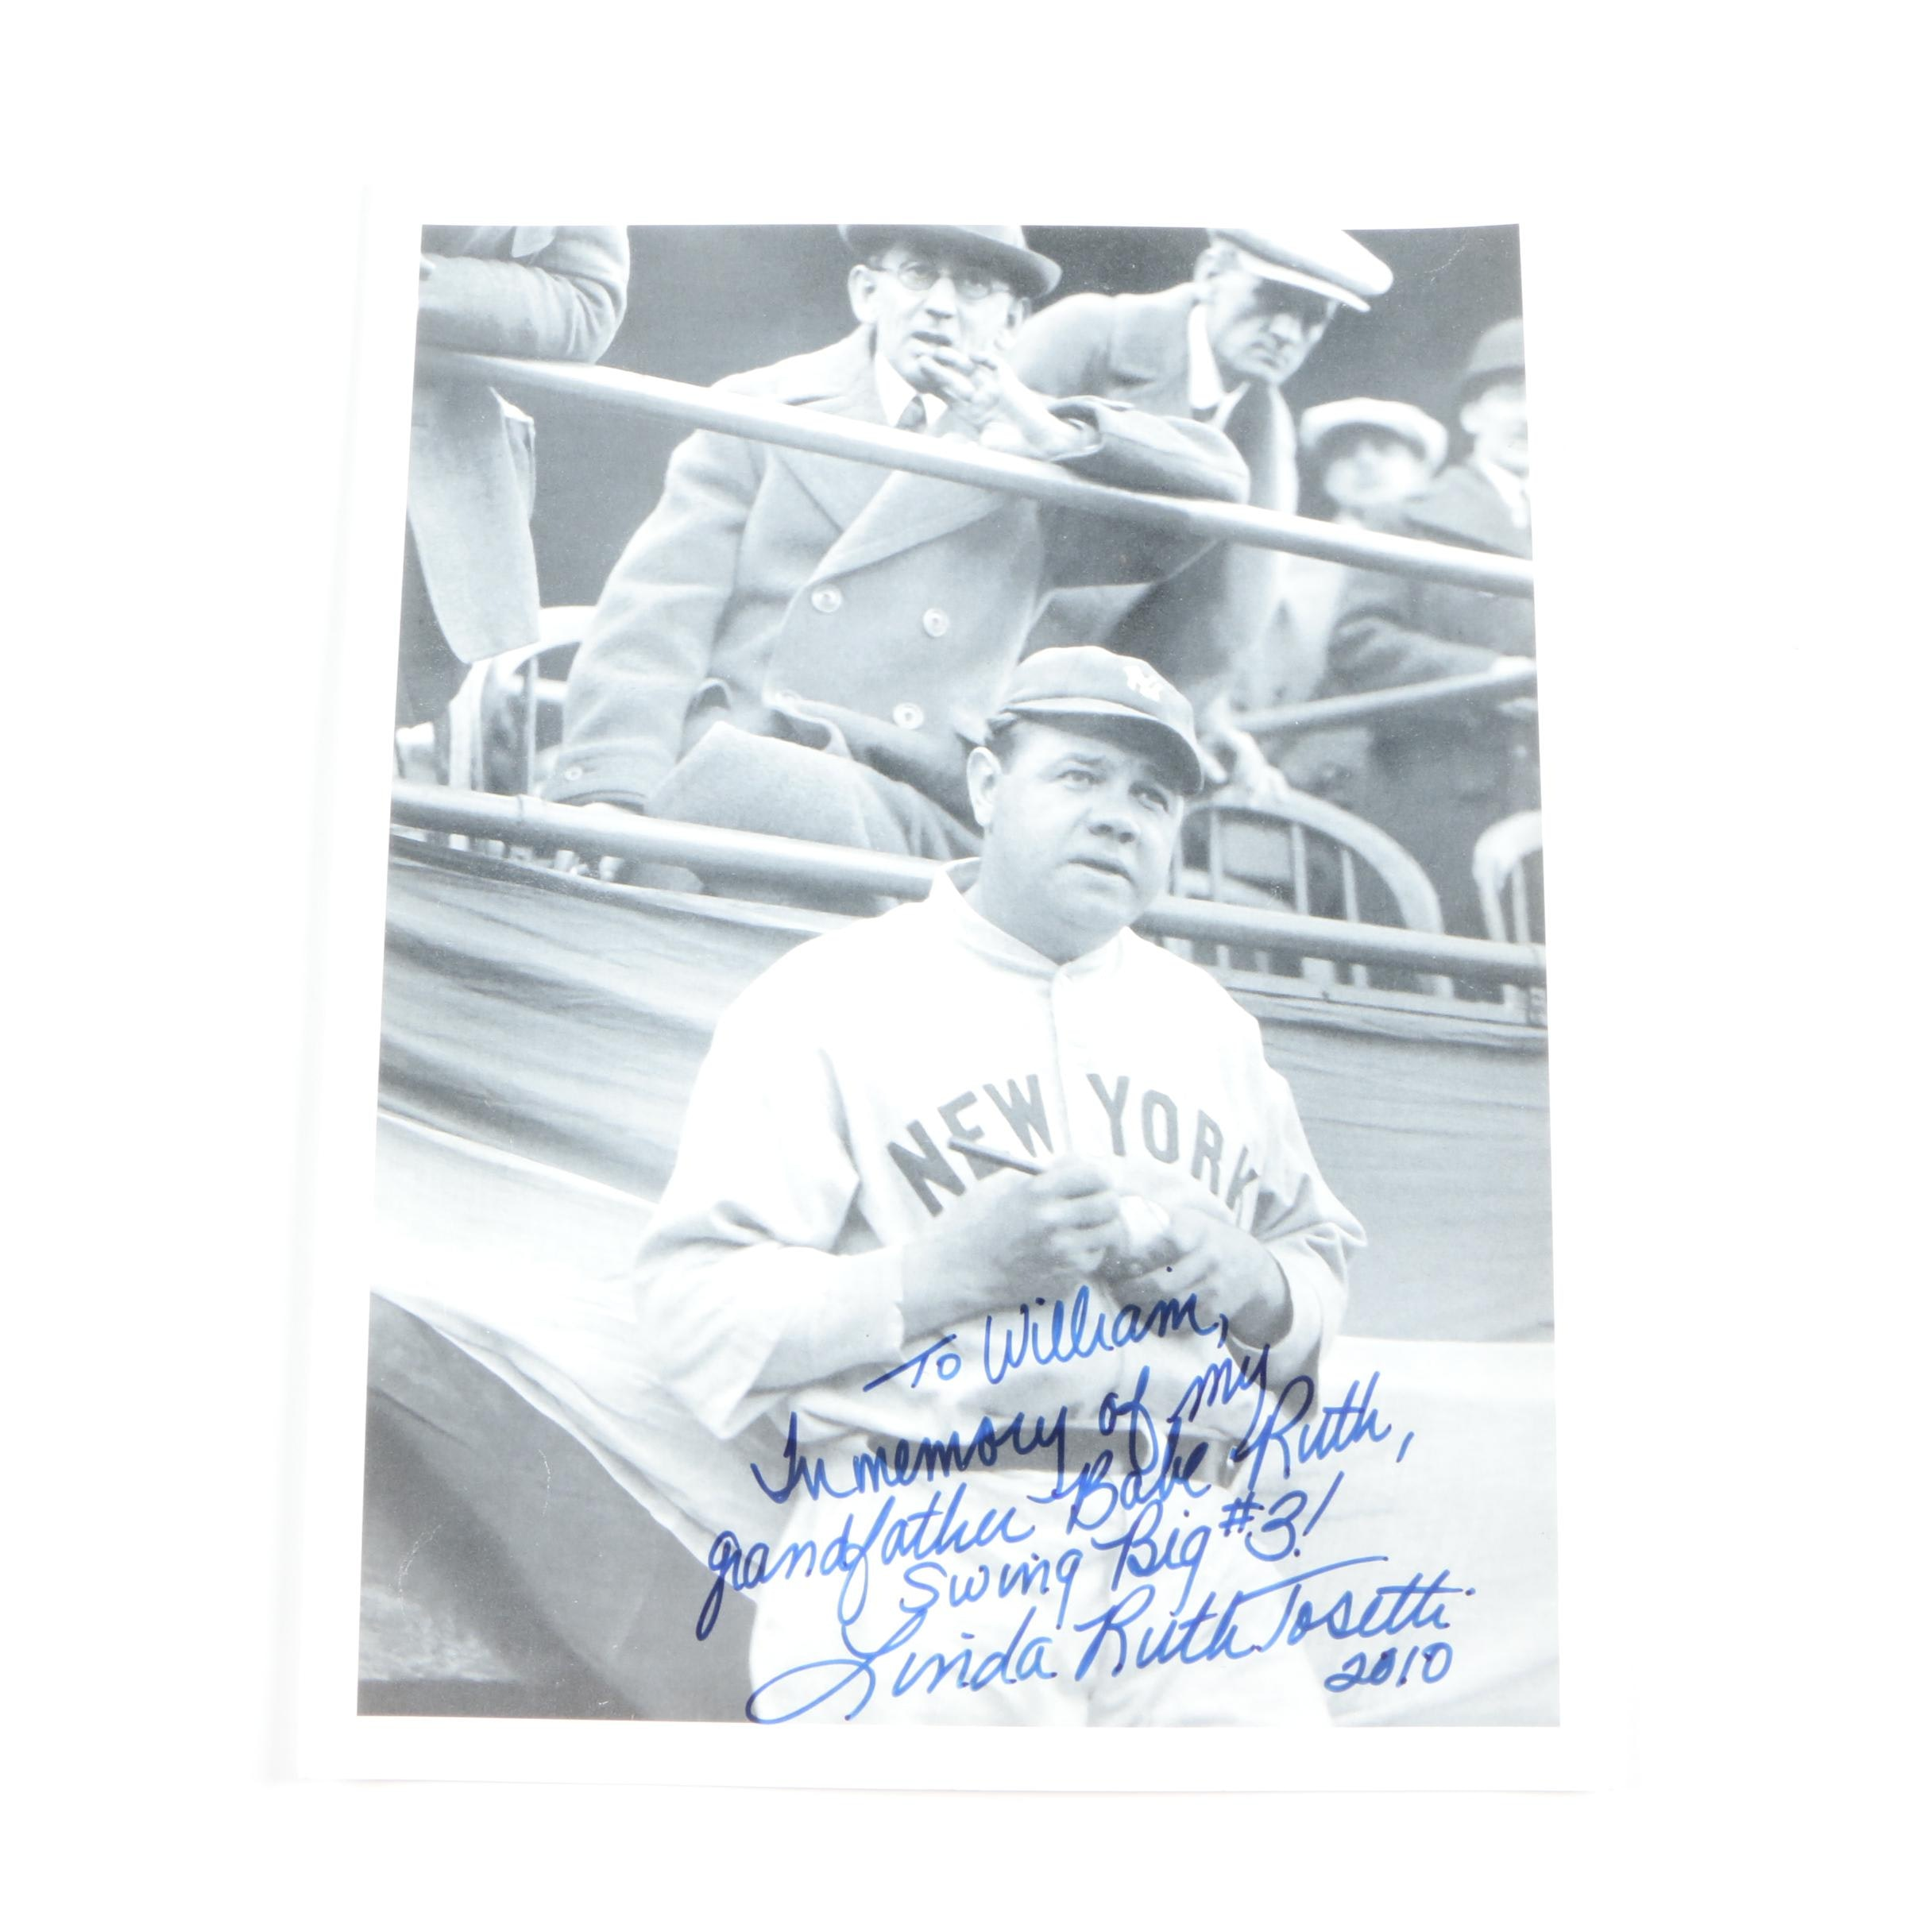 Lithograph After a Photo of Babe Ruth Signed By Ruth's Granddaughter